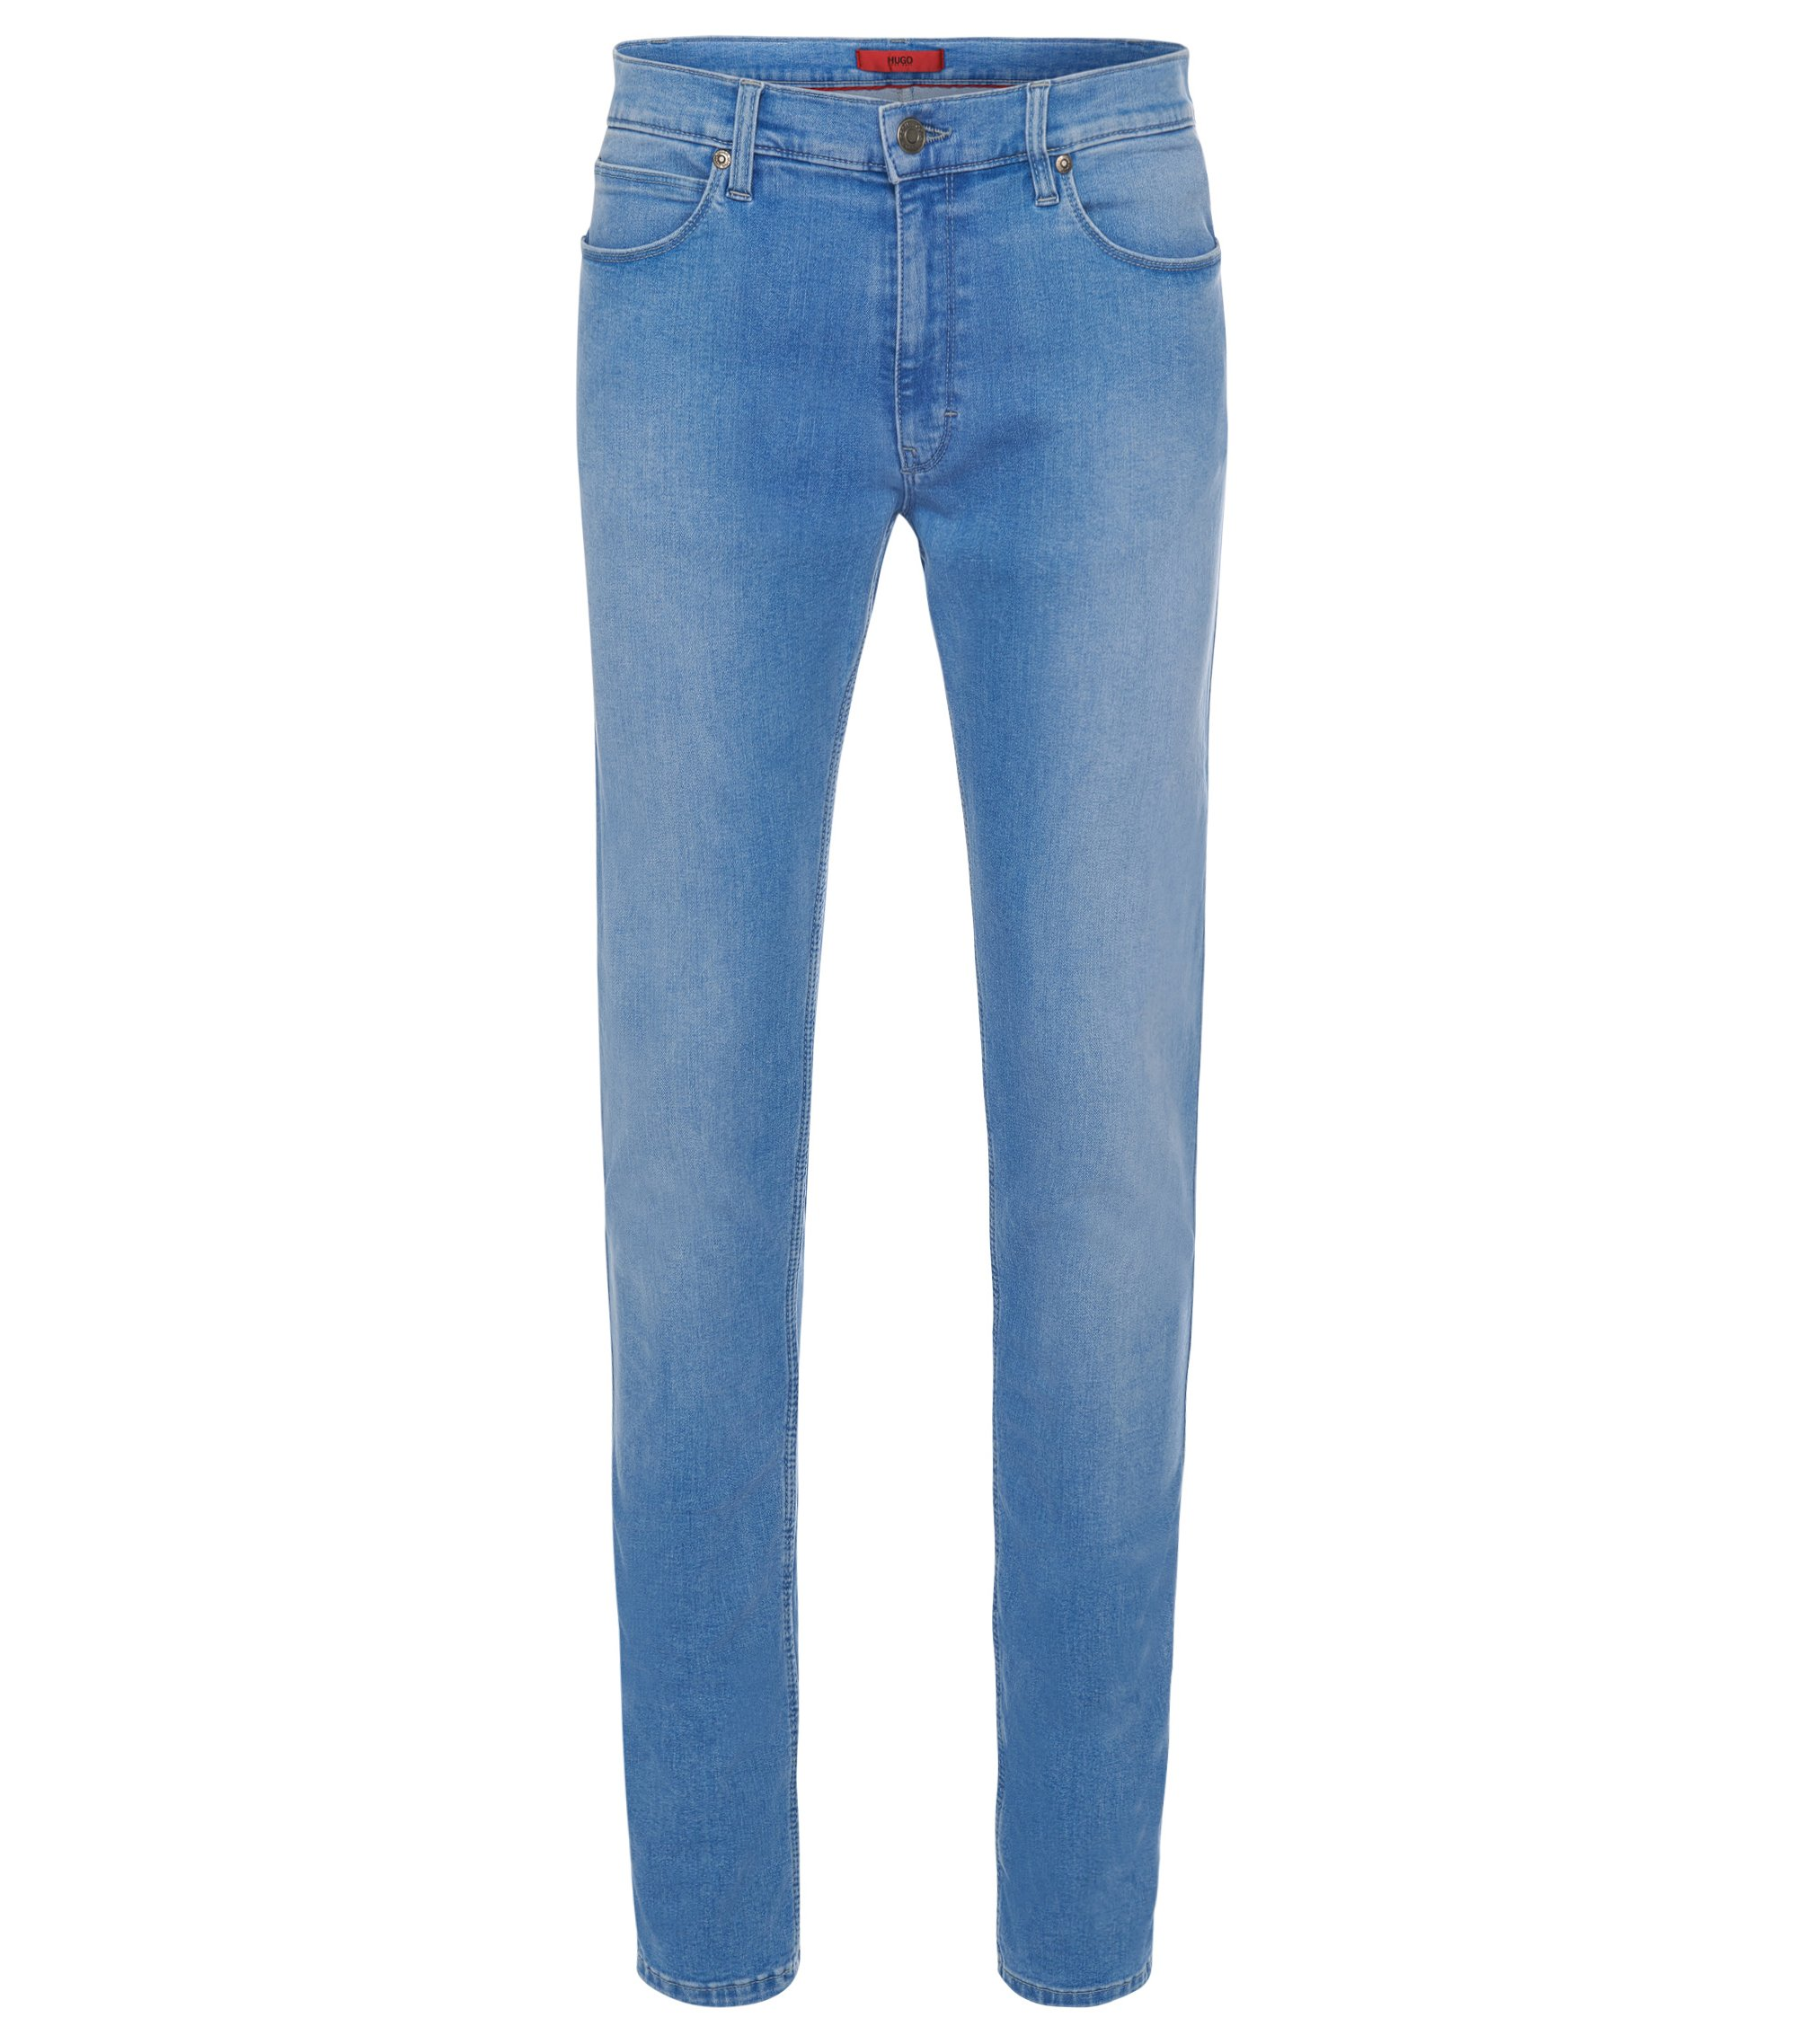 11.75 oz Stretch Cotton Blend Jeans, Slim Fit | Hugo 734, Blue